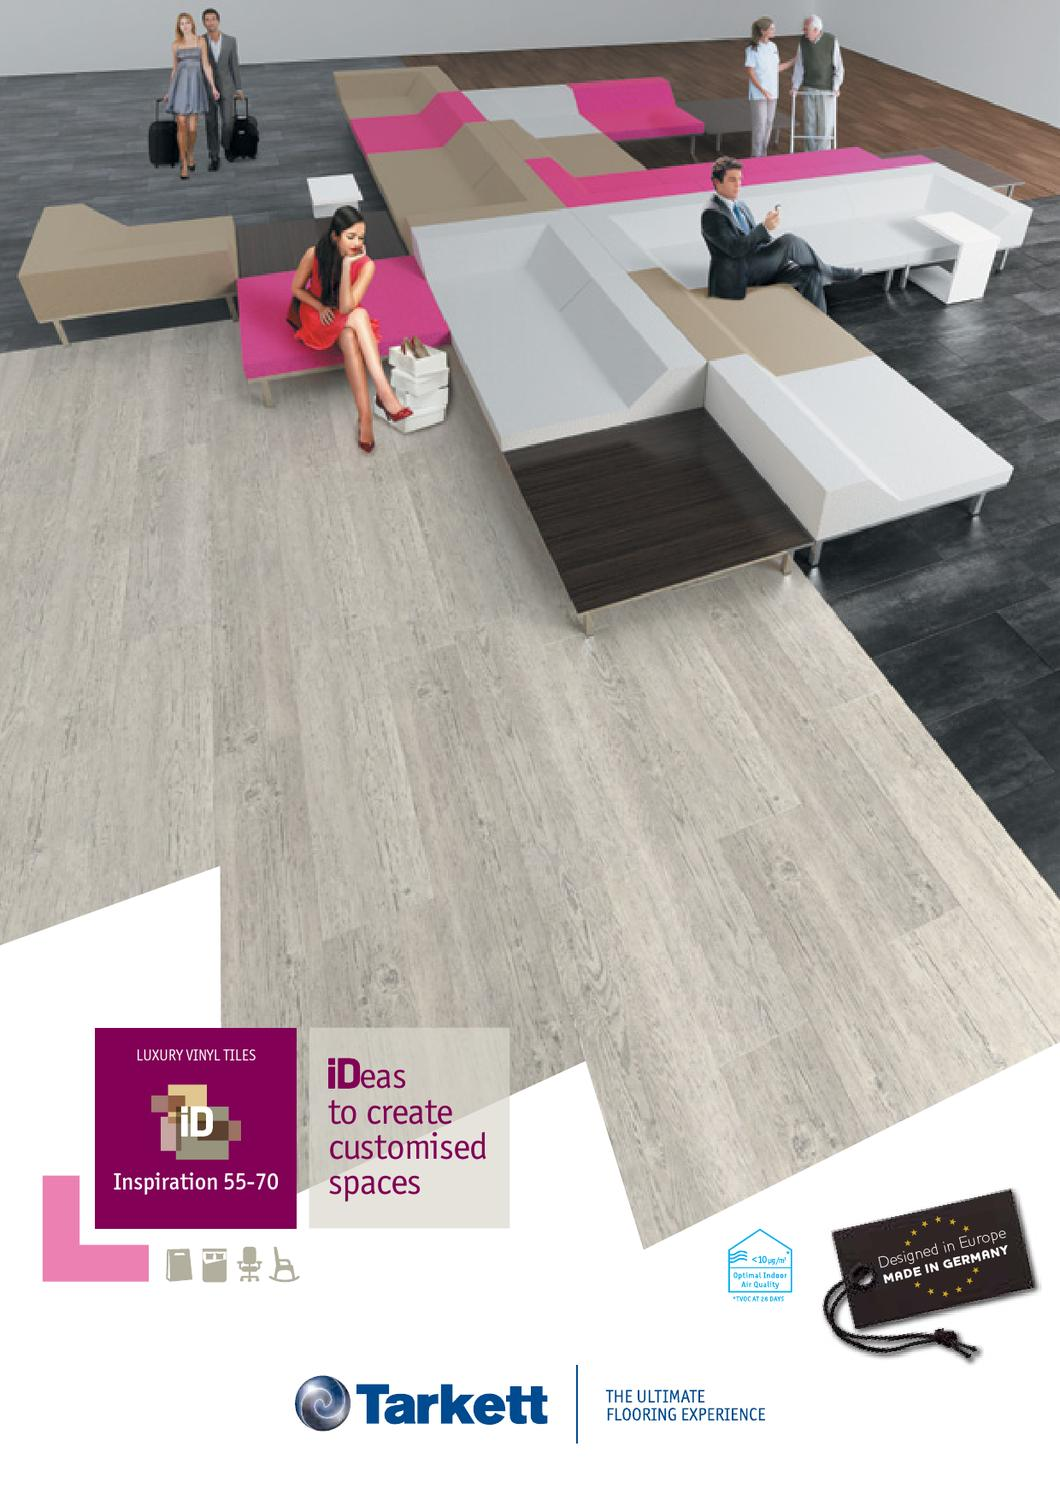 Tarkett Holding Gmbh Id Inspiration 55-70 By Tarkett A/s - Issuu